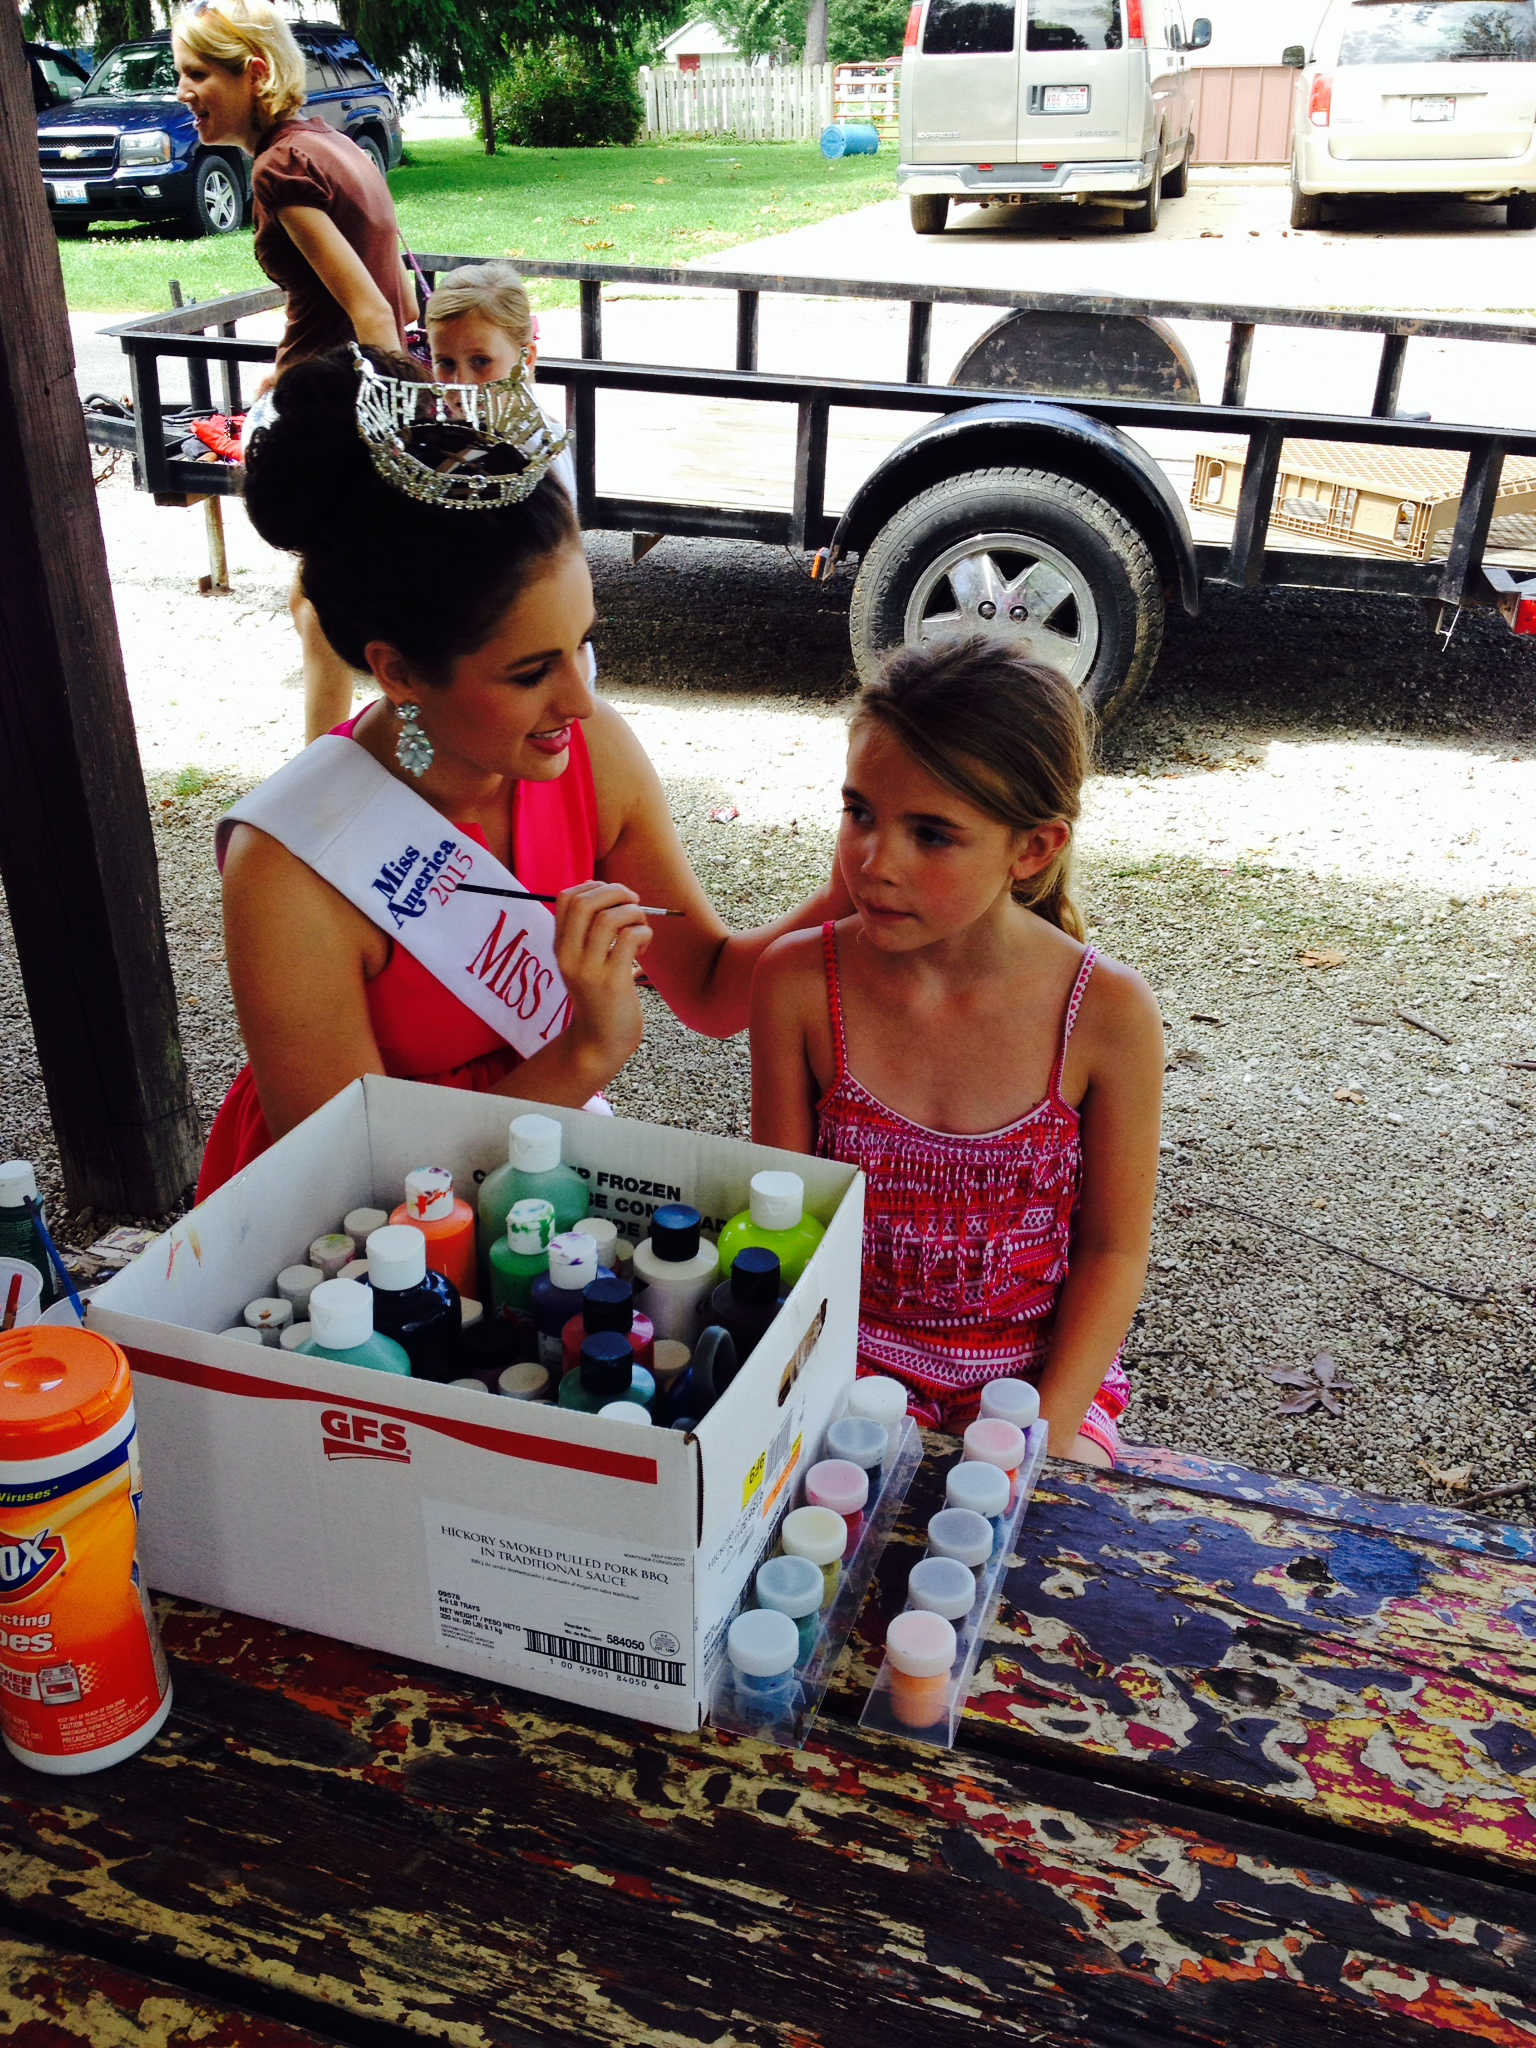 2015 Miss Northern Illinois Hannah Mayberry took time out of her busy schedule to visit the Outreach Community Center's Booth and even enjoyed doing some face painting for a young fan.